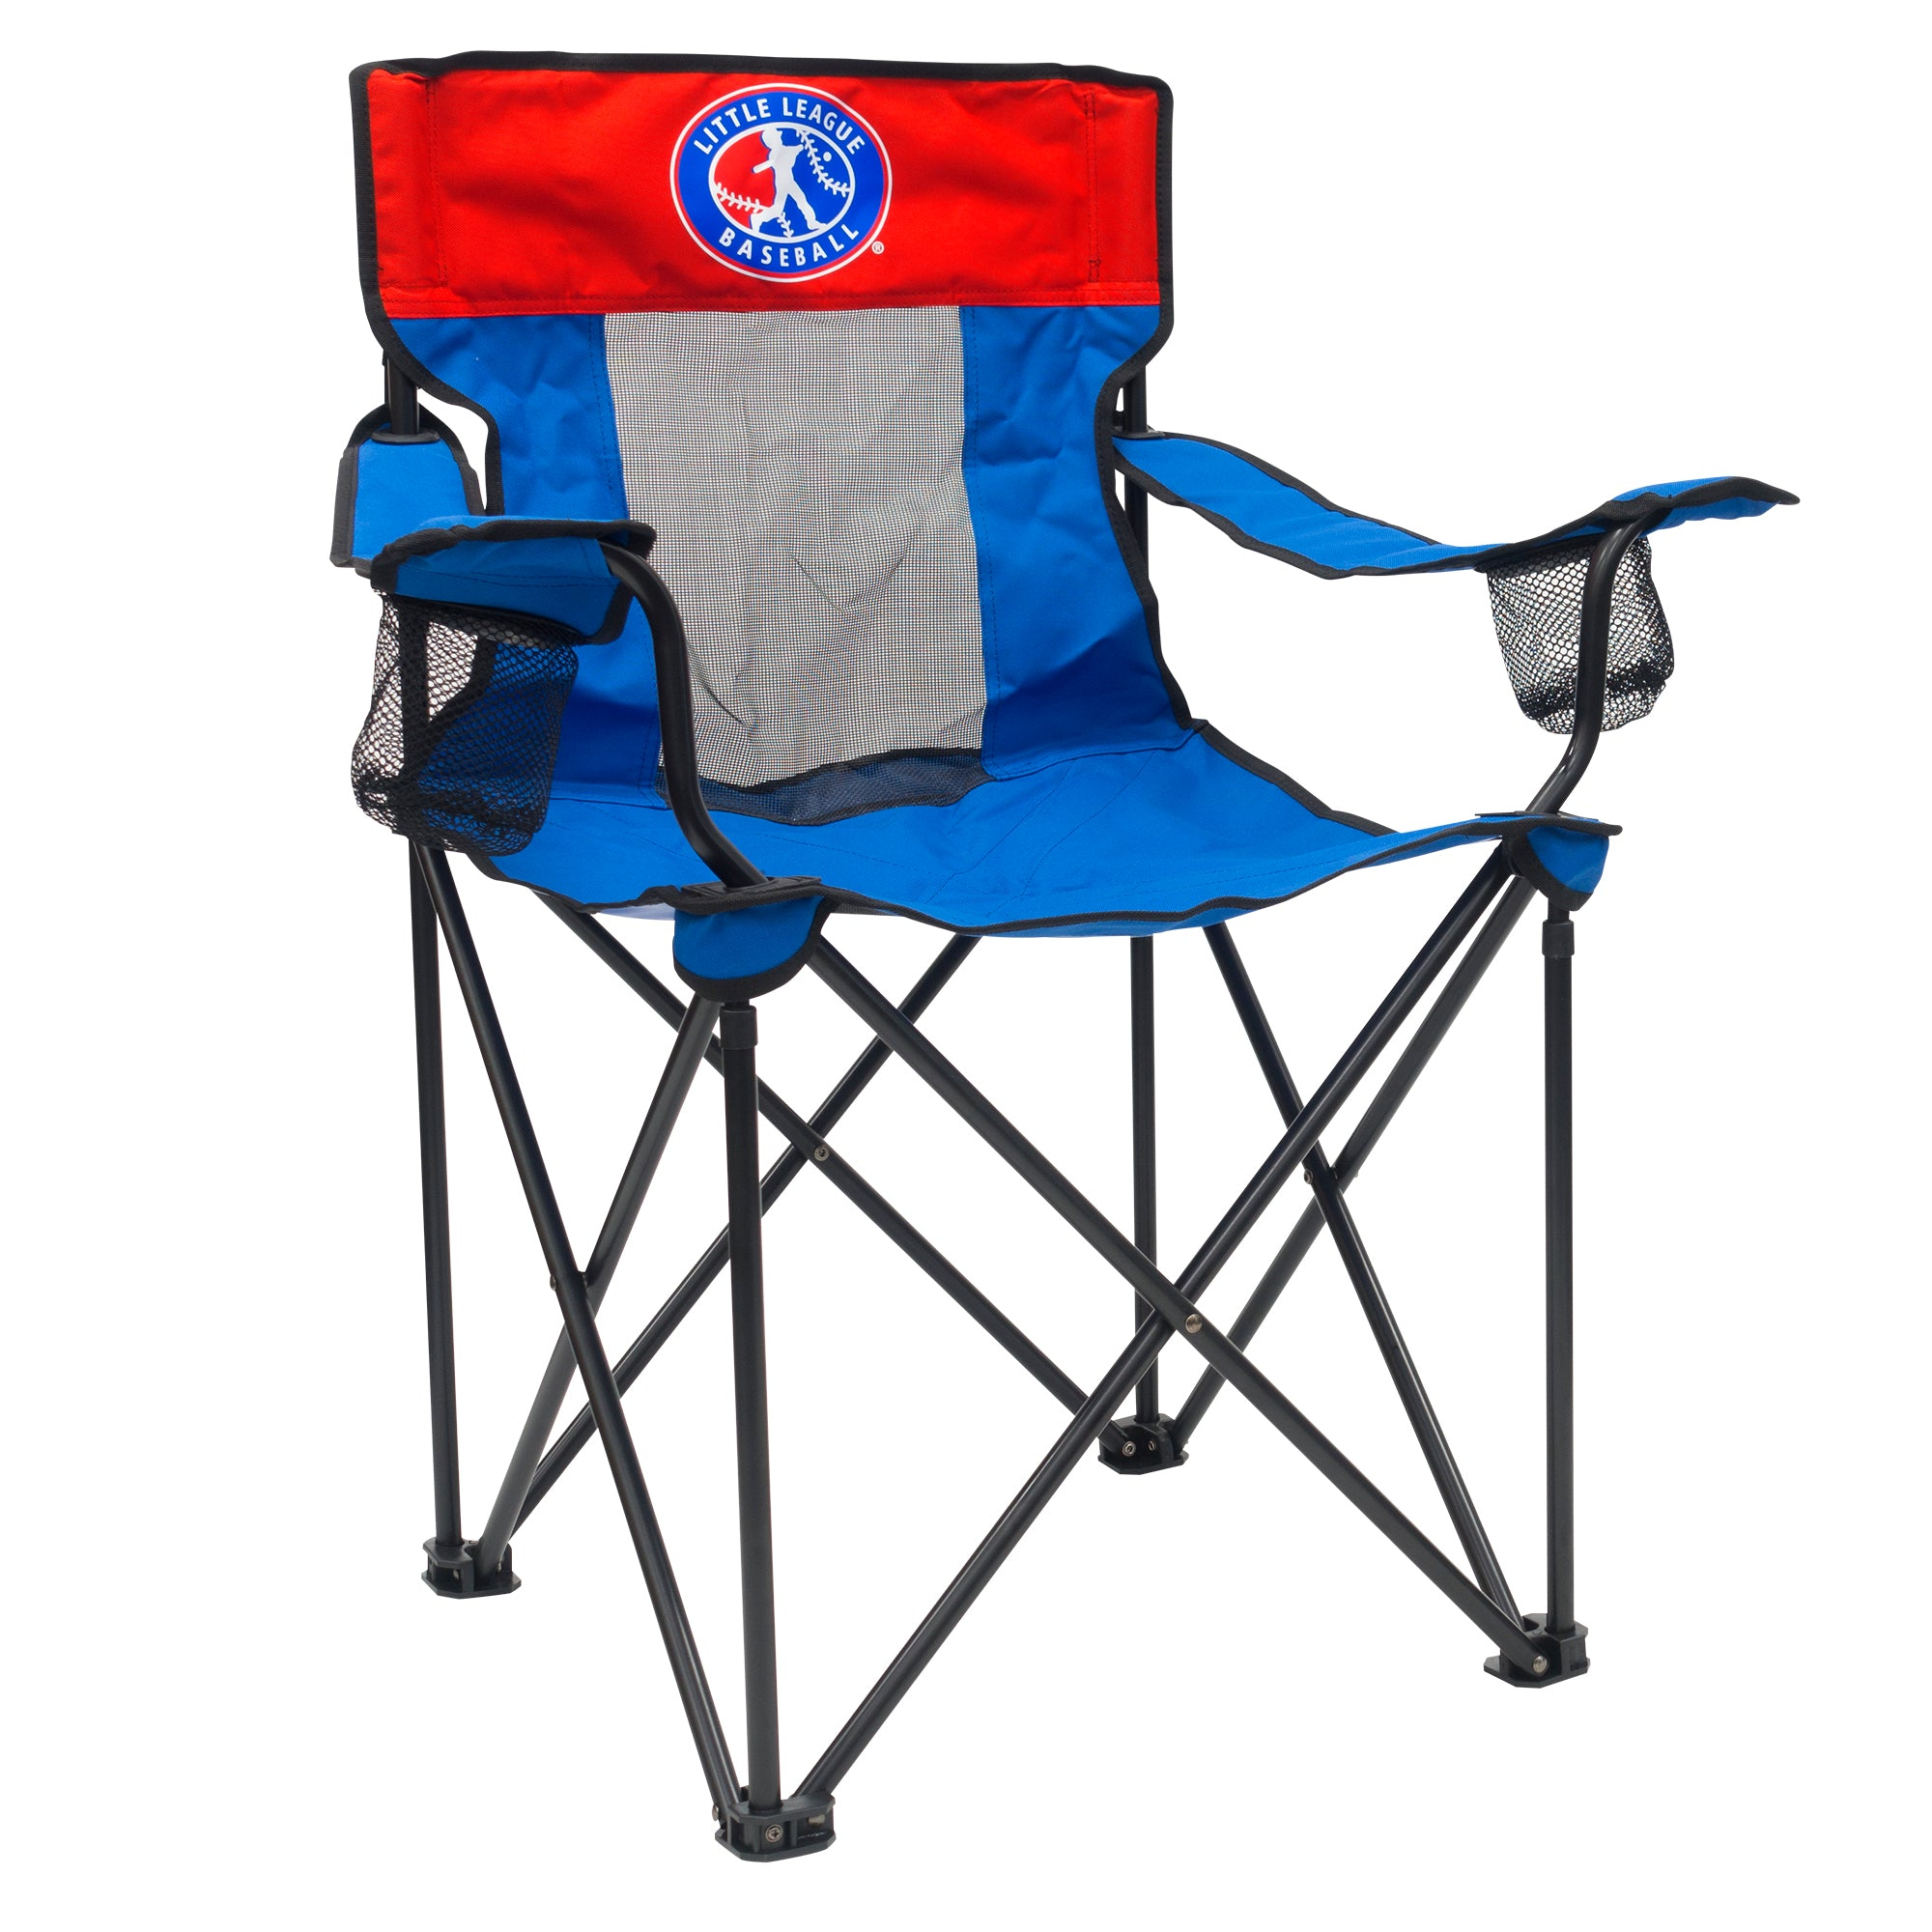 Little League Folding Chair